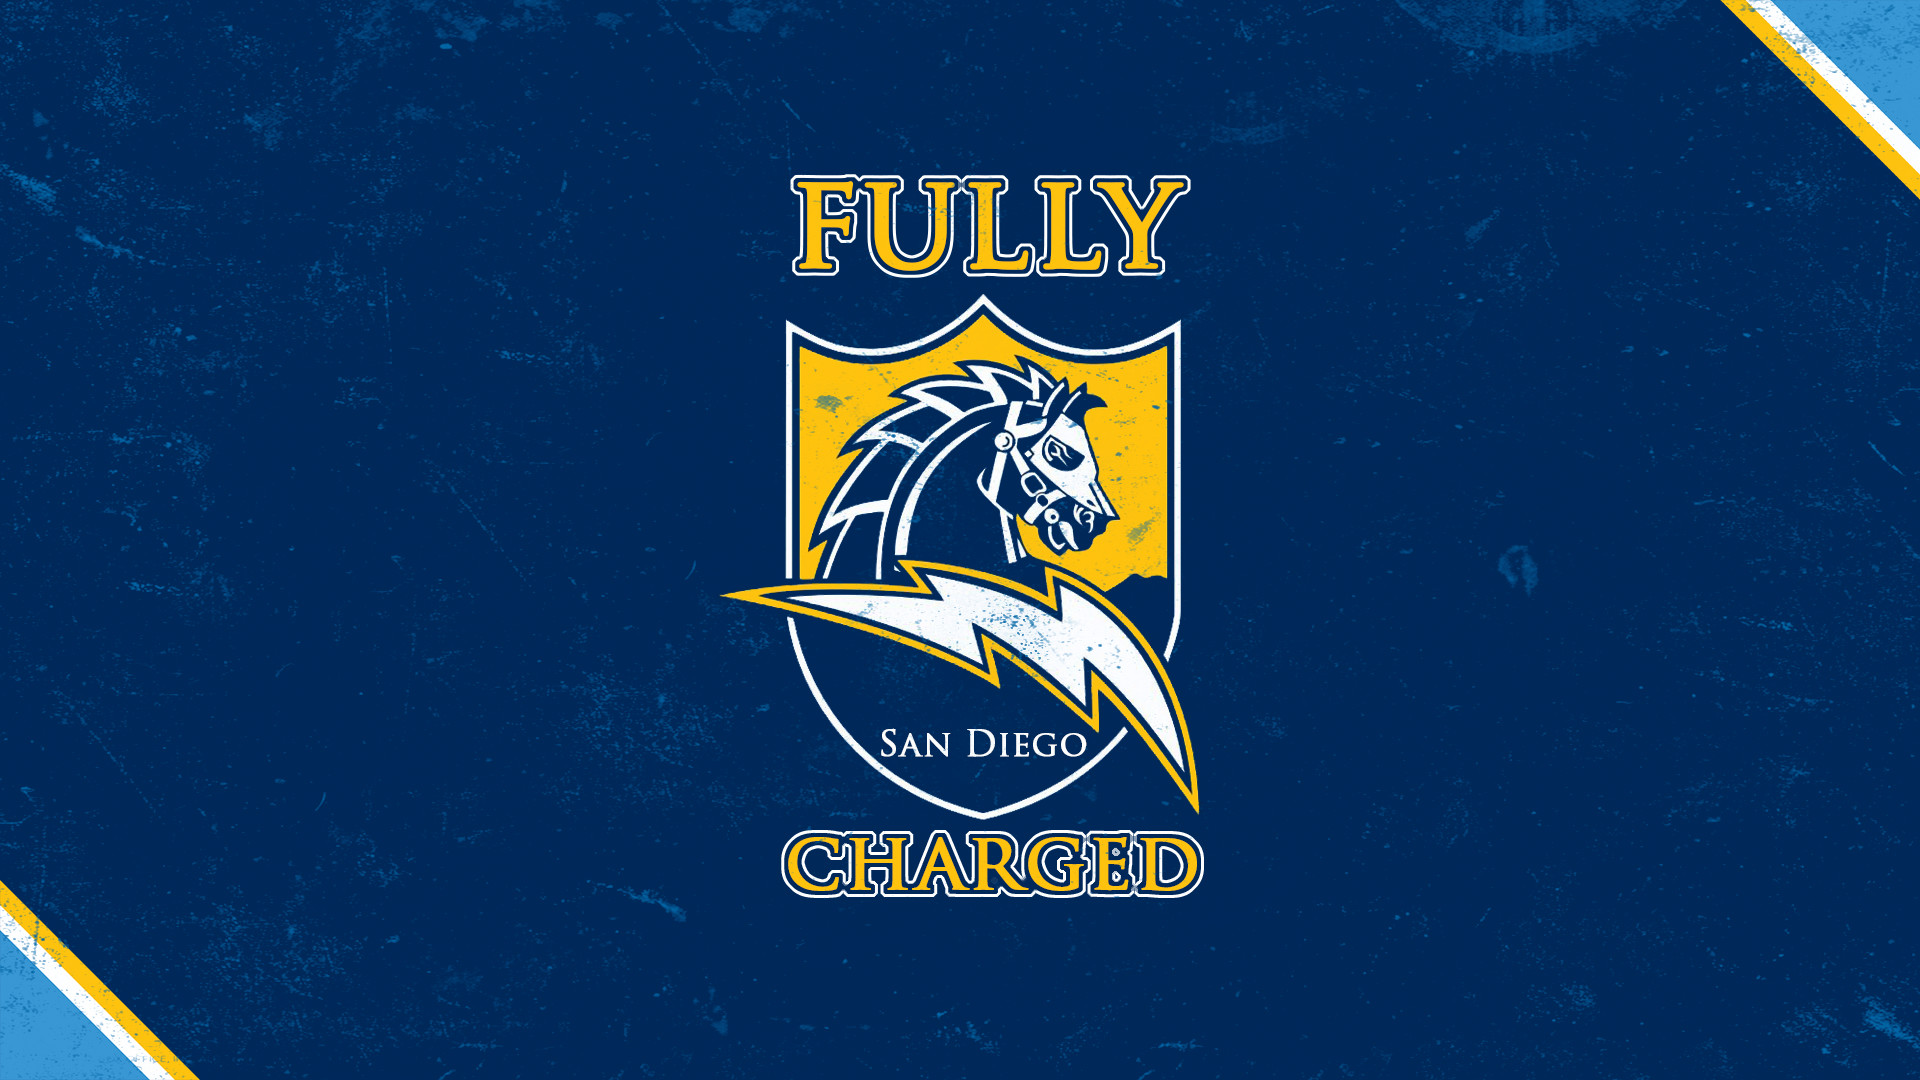 Free Download Hot San Diego Chargers Wallpapers 1920x1080 For Your Desktop Mobile Tablet Explore 47 Chargers Background Sd Chargers Wallpaper Chargers Wallpaper Iphone Chargers Background